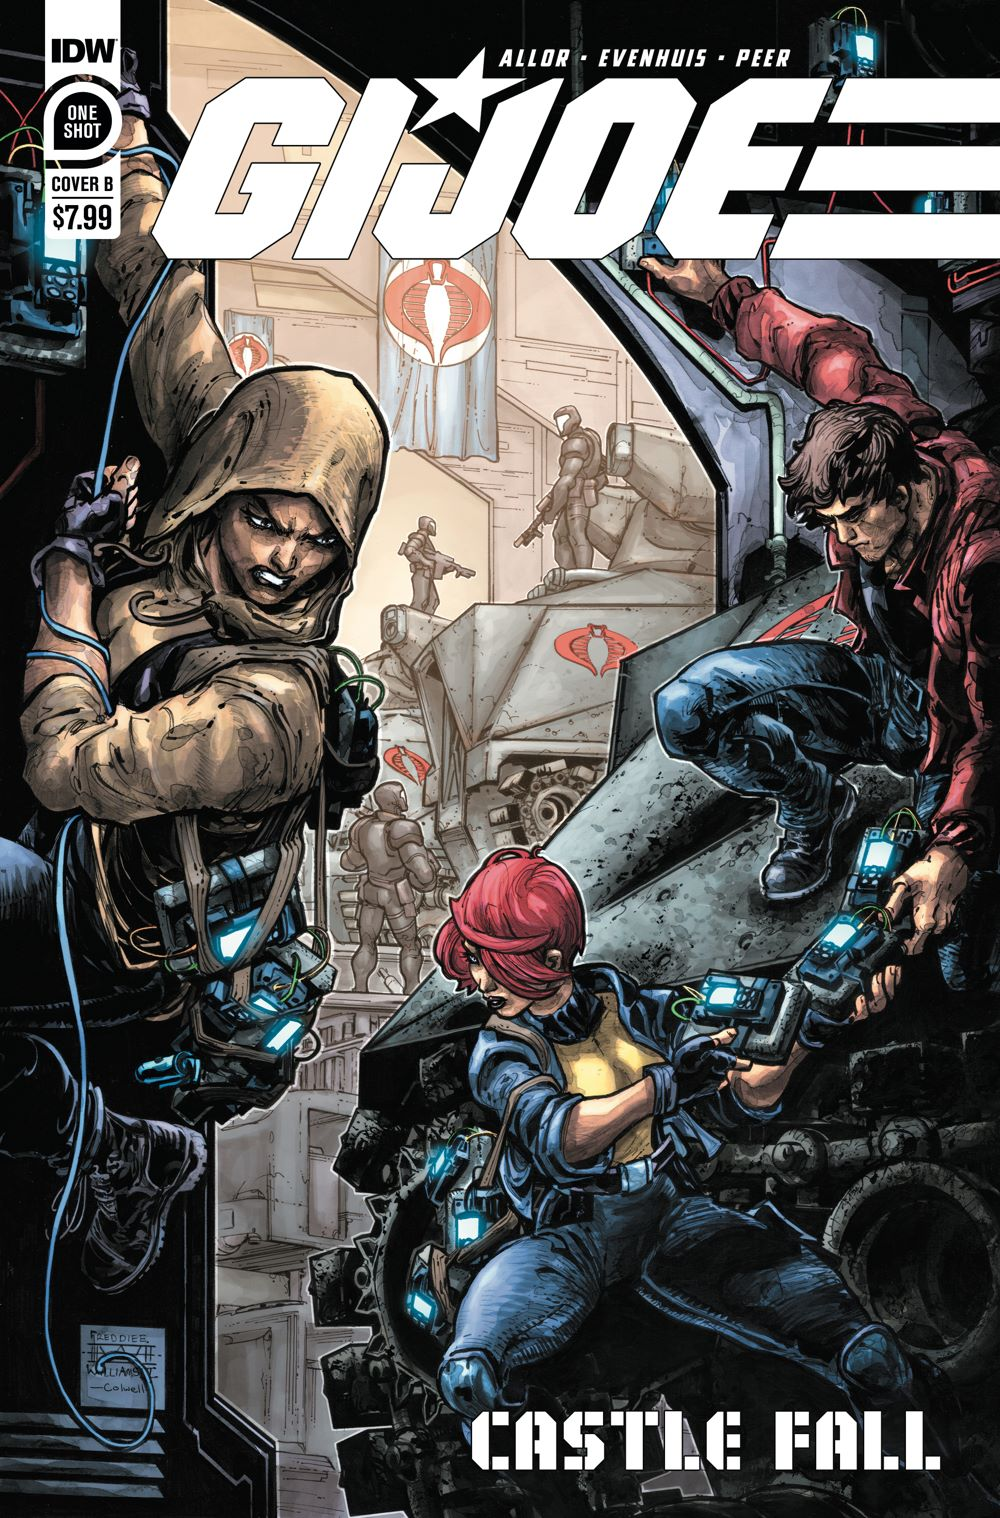 GIJoe_CastleFall01-coverB ComicList: IDW Publishing New Releases for 03/17/2021